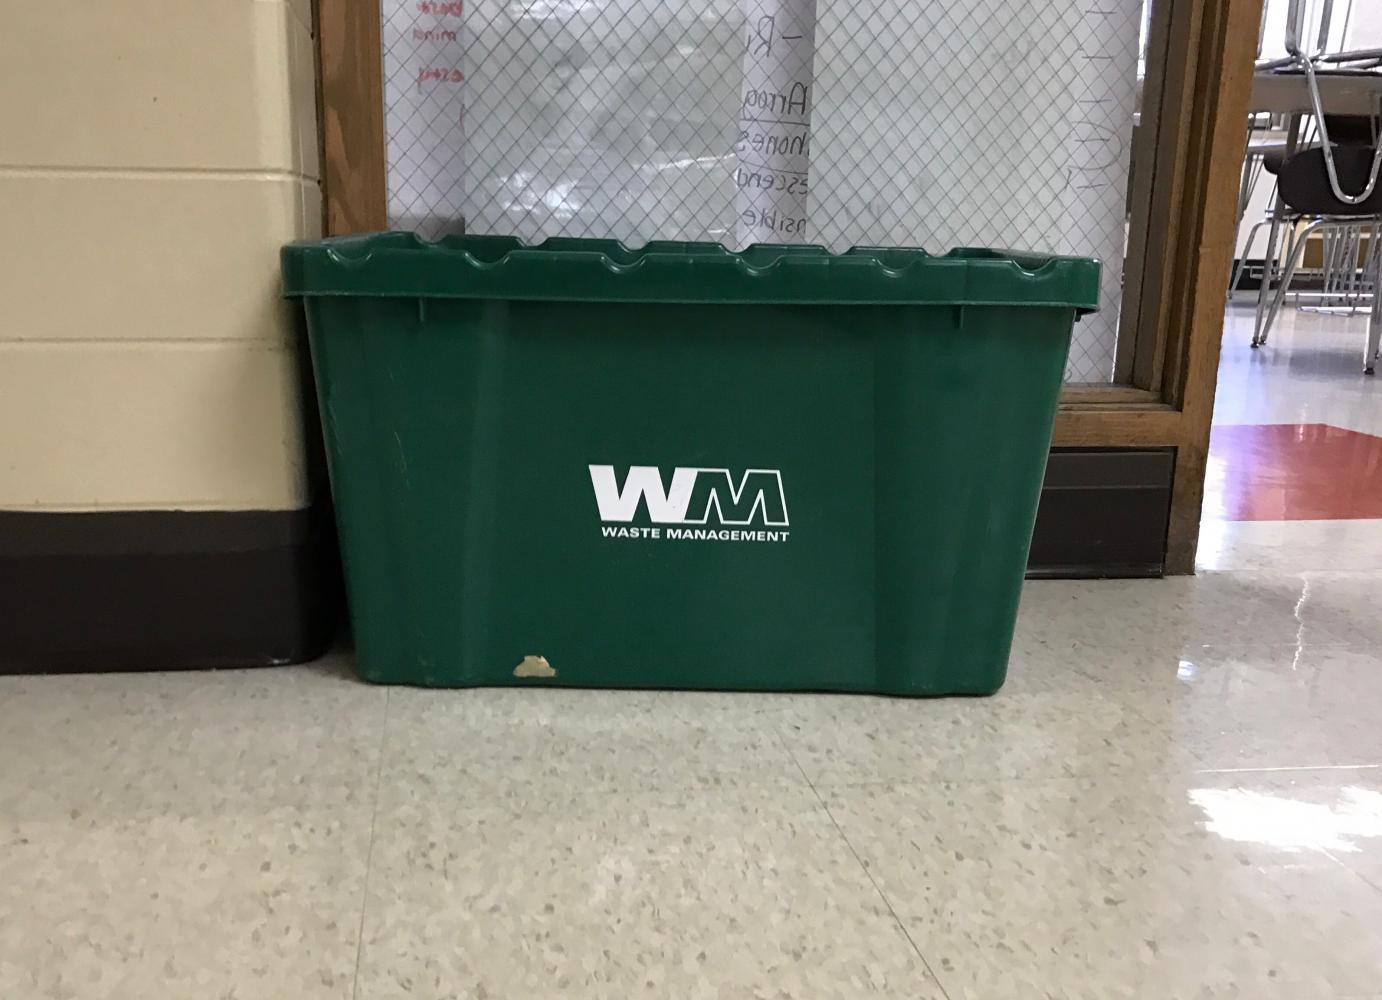 Part of the project will focus on increasing recycling at LHS. They plan to add more recycling bins around the school and bring more awareness to the importance of recycling.